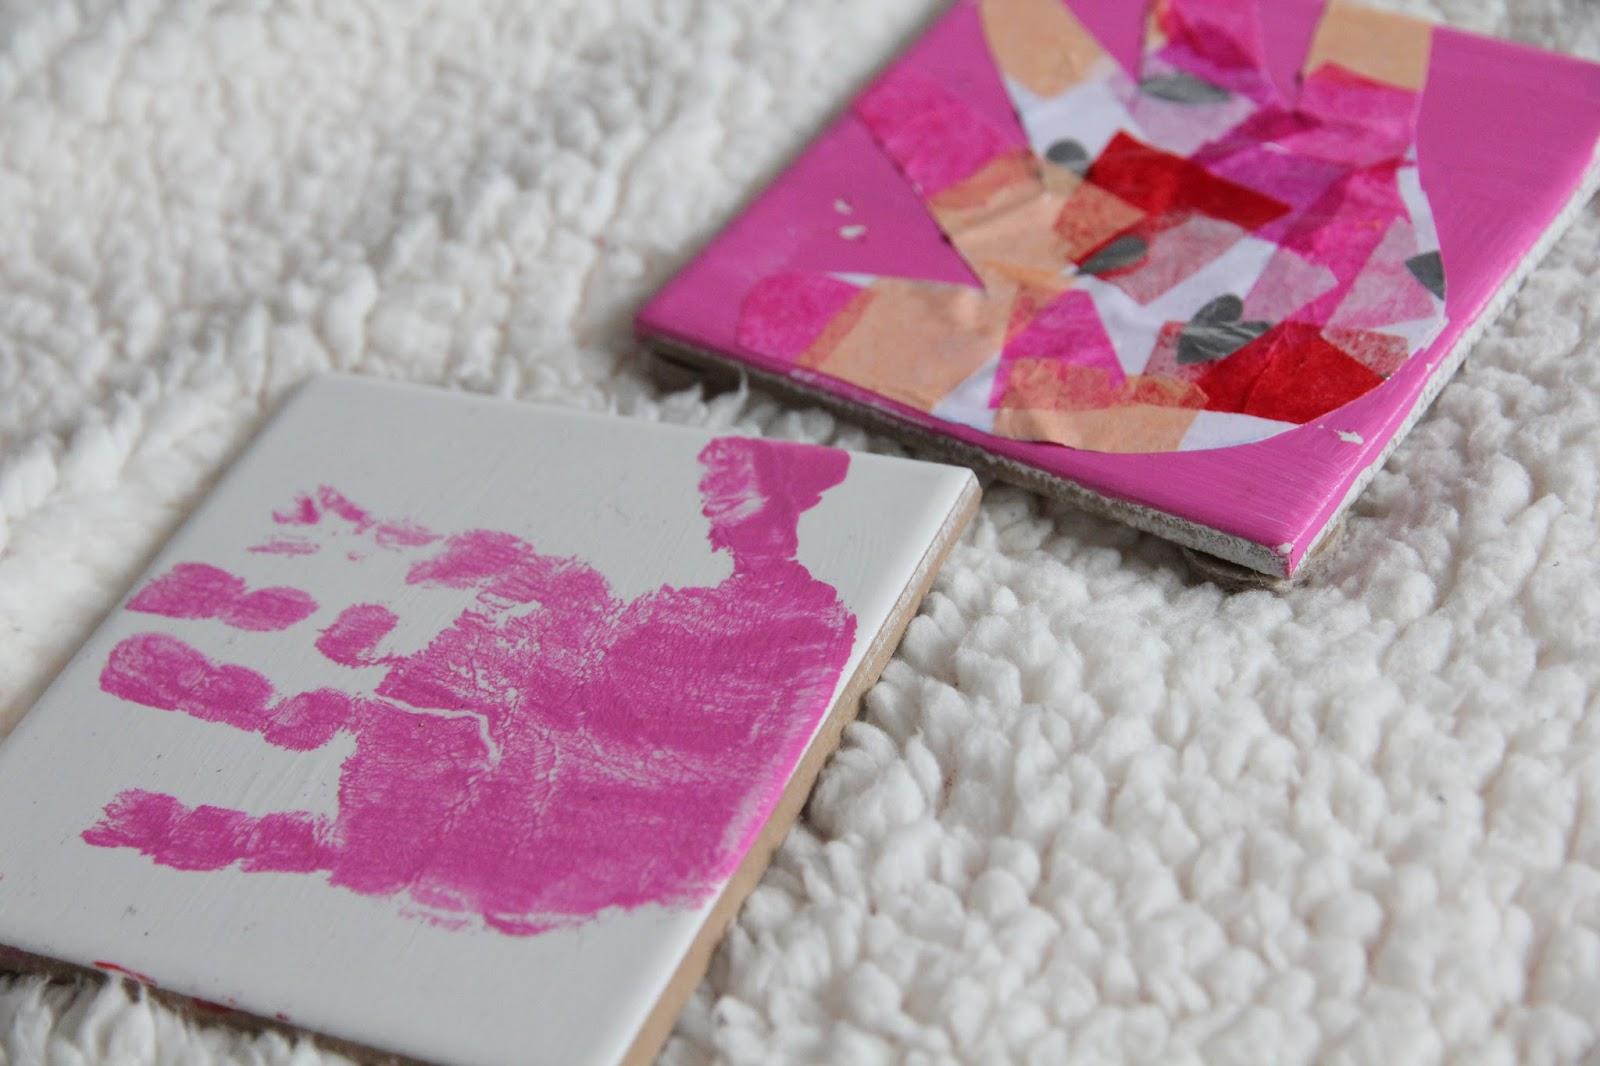 Mother's Day is approaching and I have the perfect handmade gift idea for you and your little one's to create.